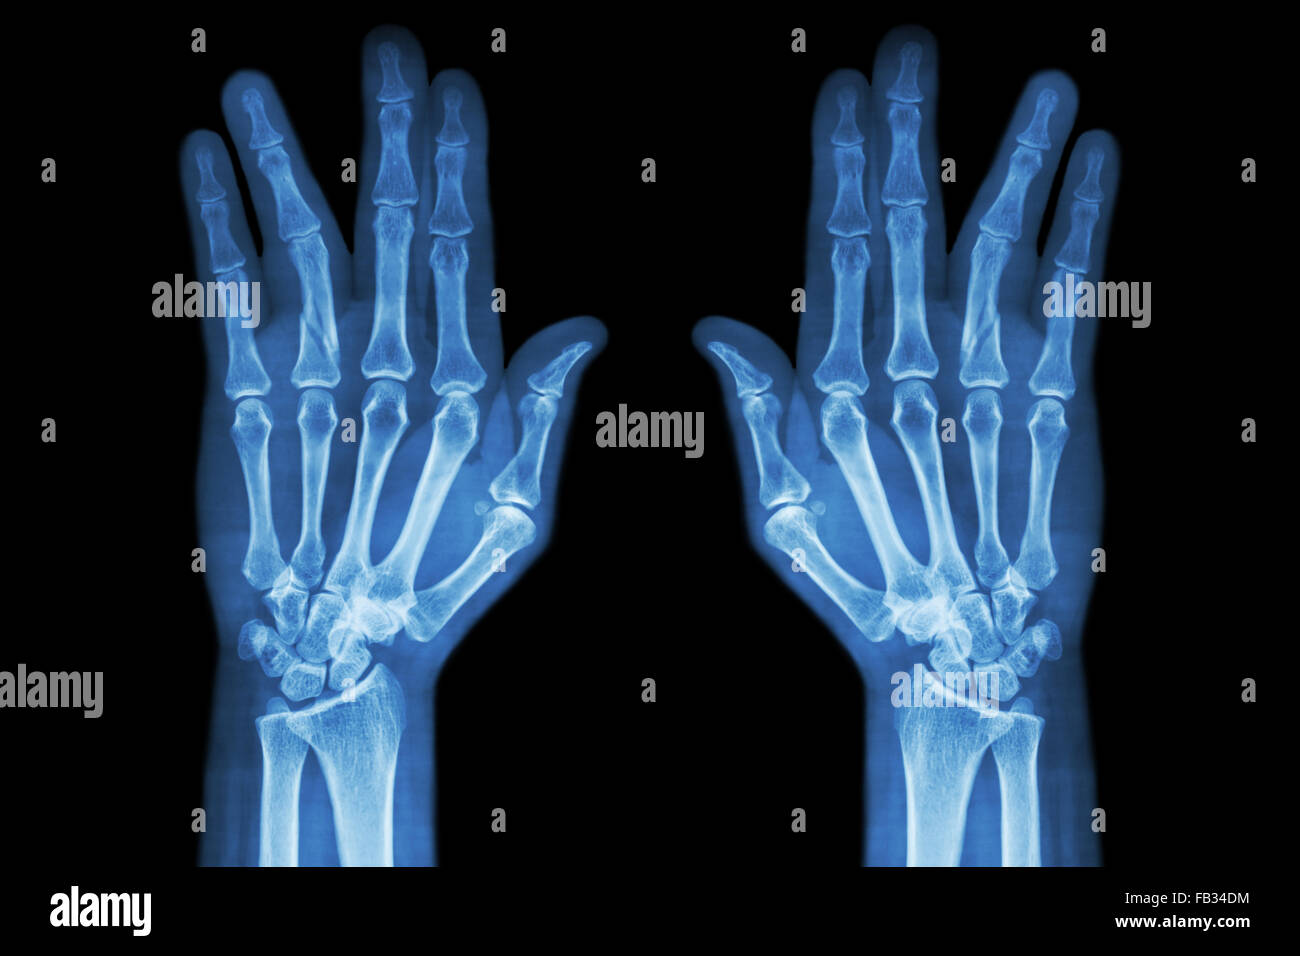 Hand Finger Injury Medical X Ray Stock Photos & Hand Finger Injury ...